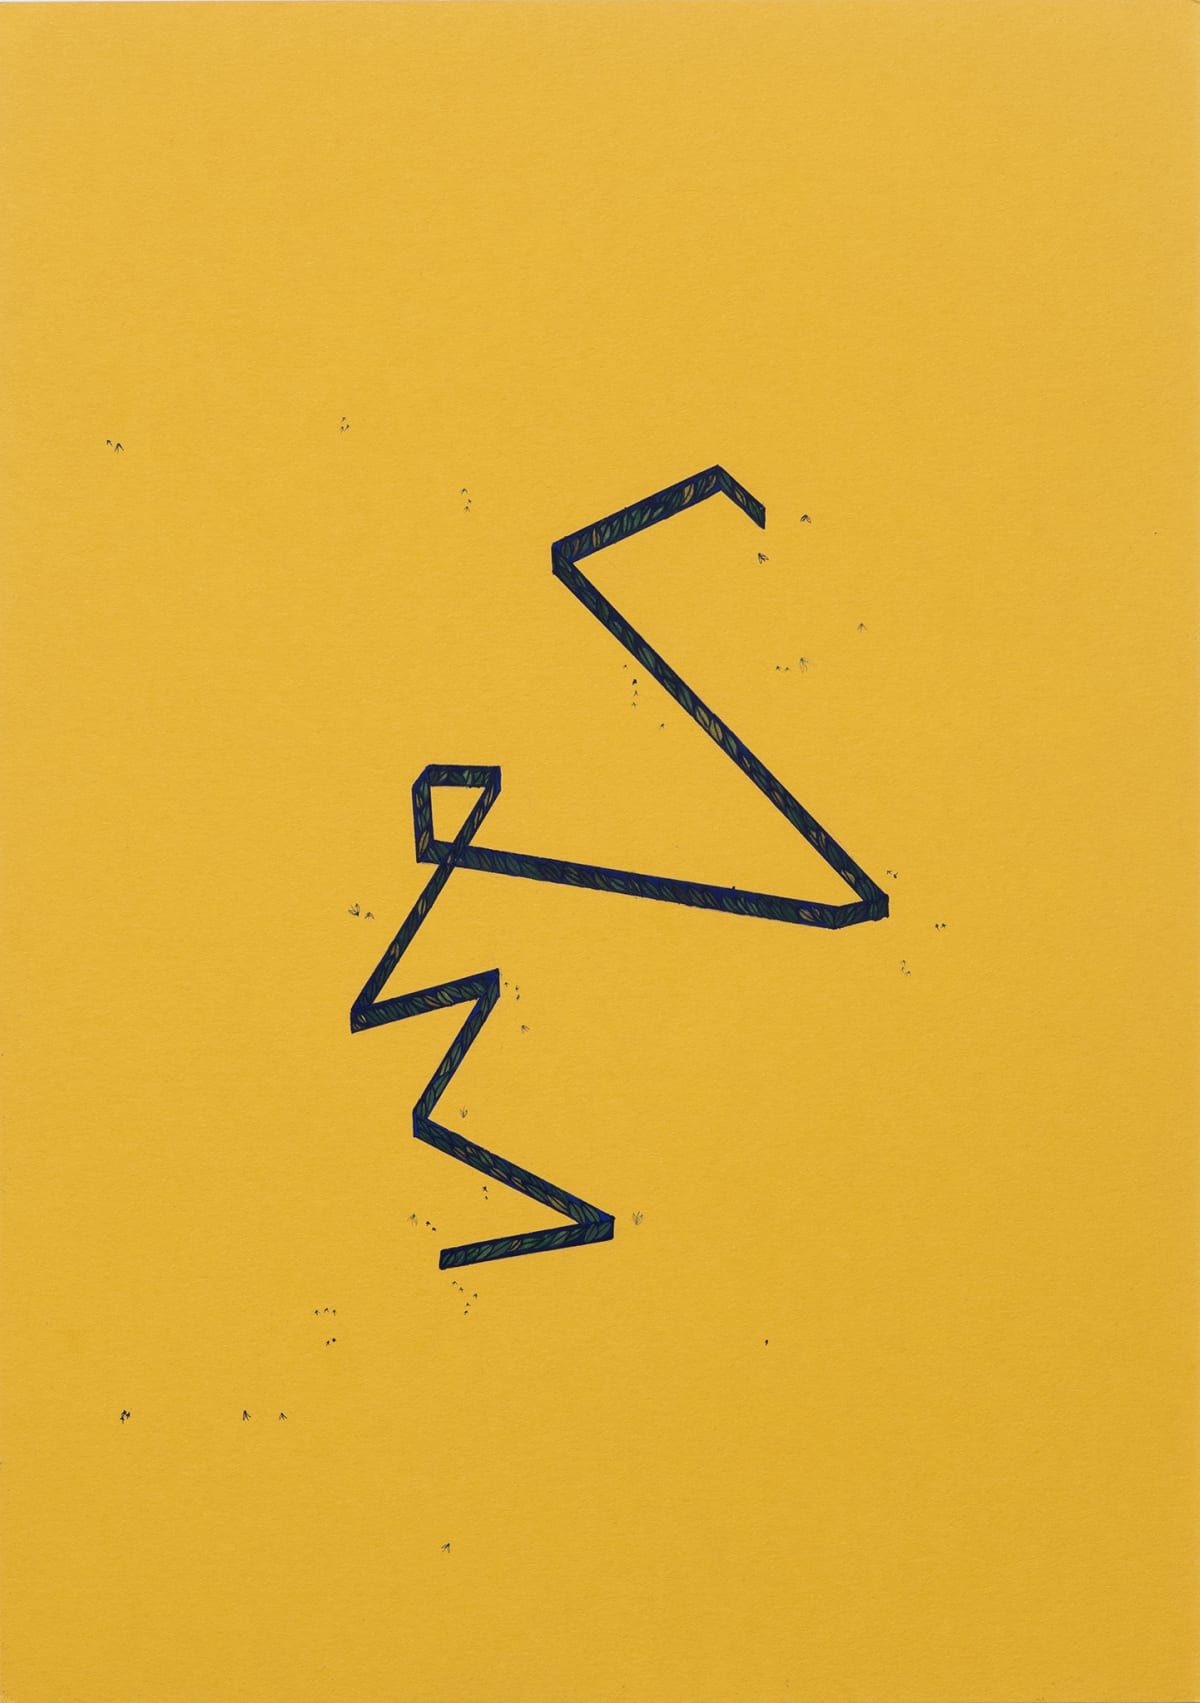 Wardha Shabbir A Drawing of a Map, 2020 Gouache on paper 29 x 25.6 cm 11 3/8 x 10 1/8 in